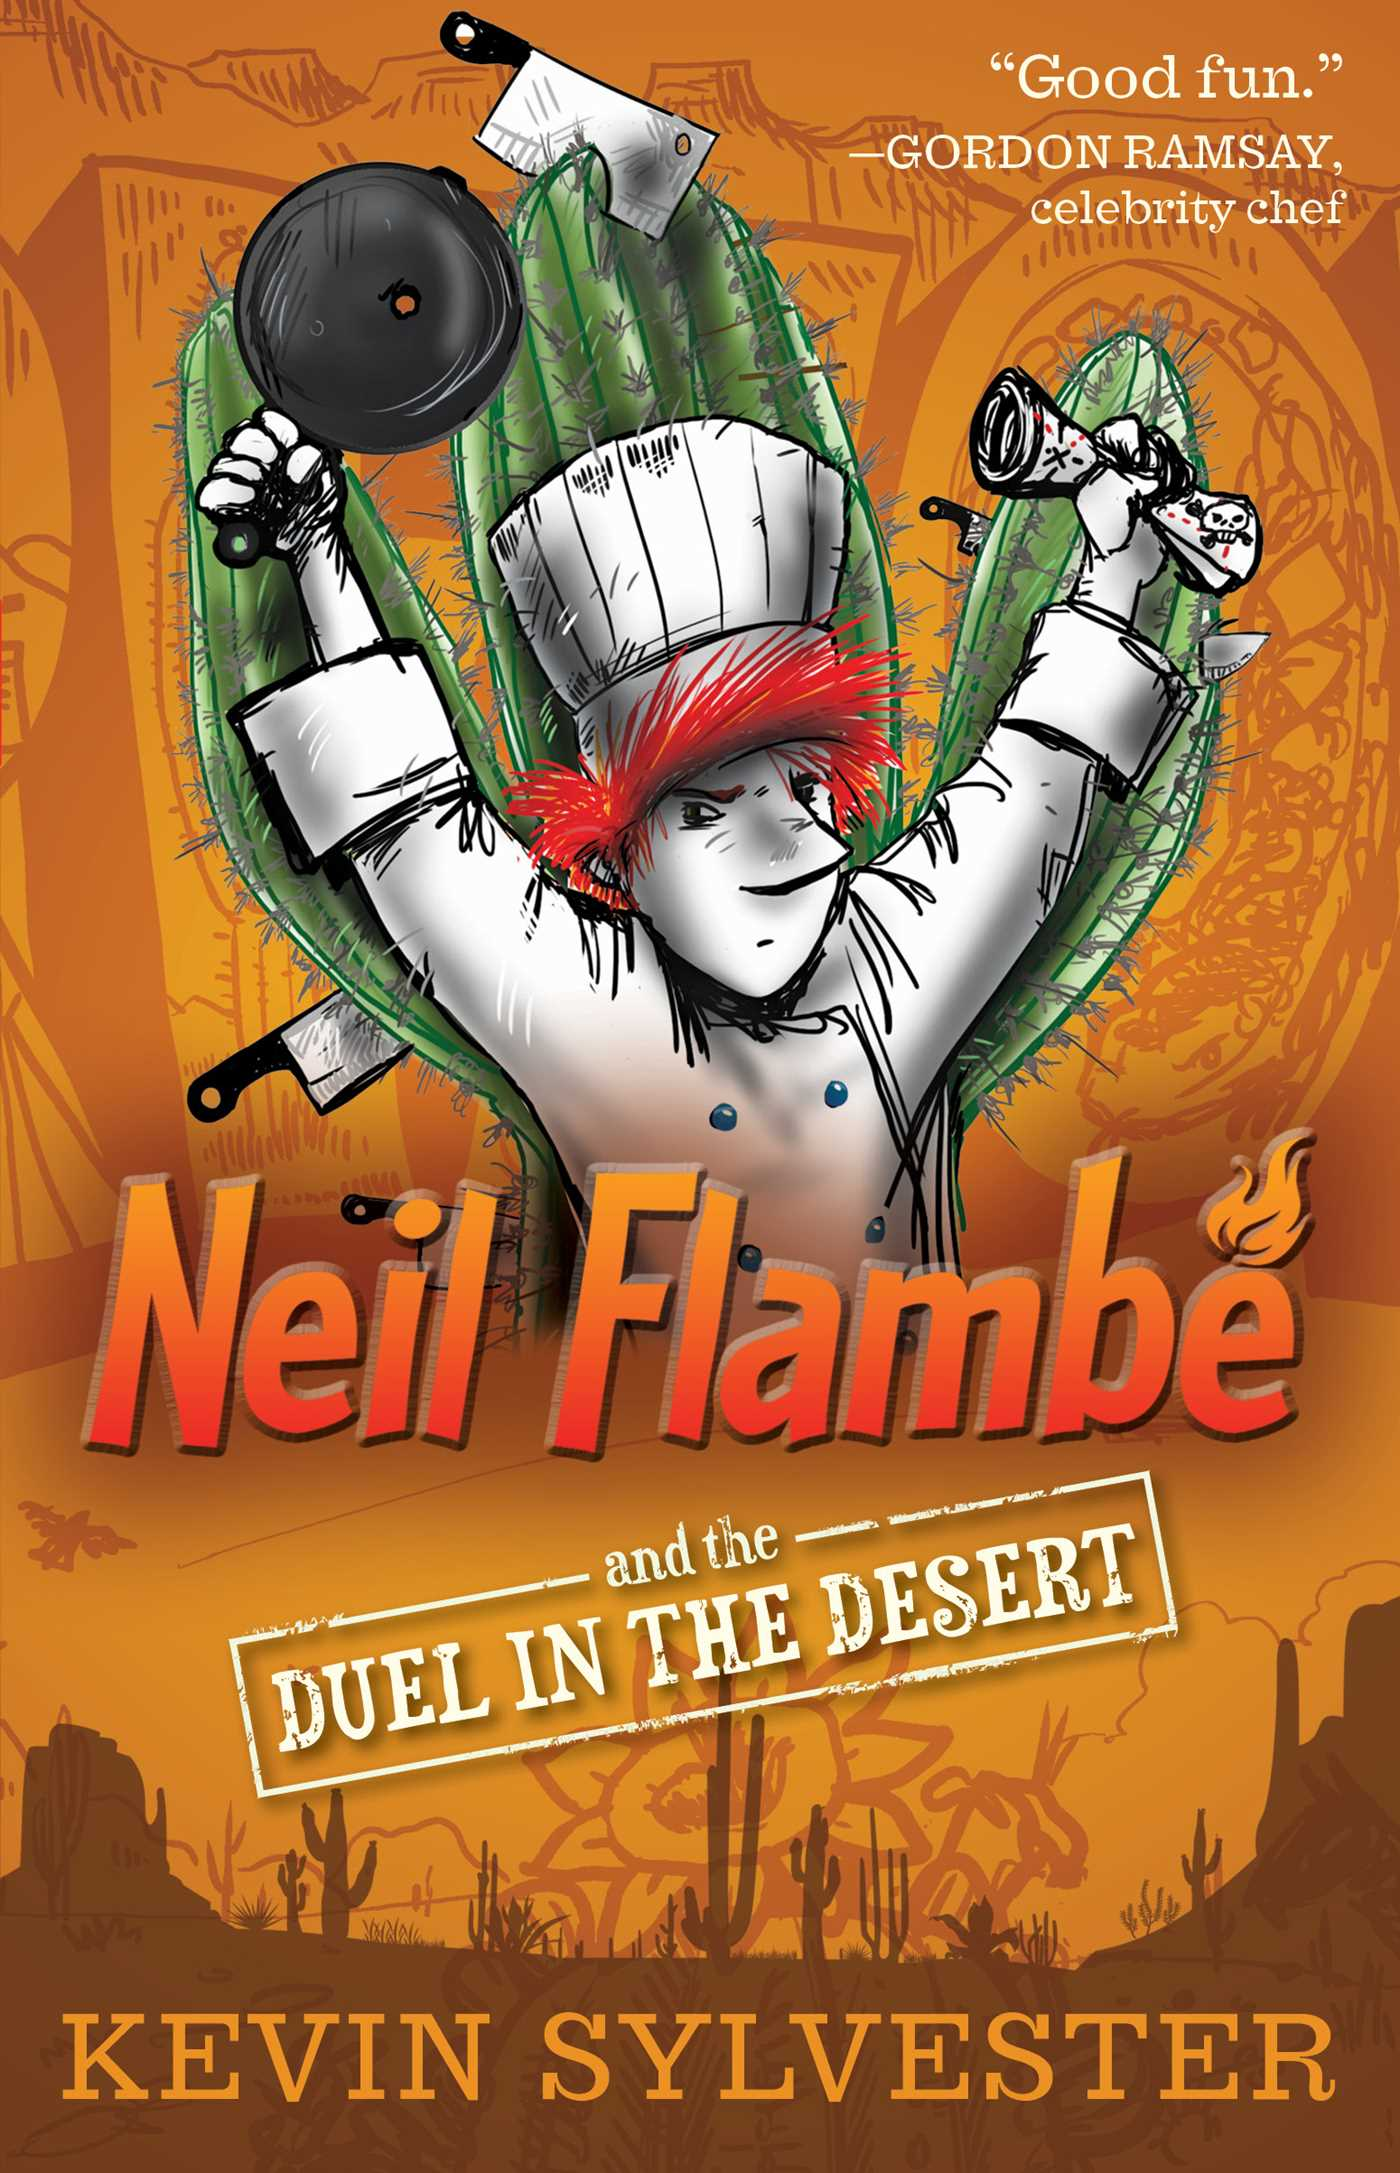 Neil flambe and the duel in the desert 9781481410434 hr